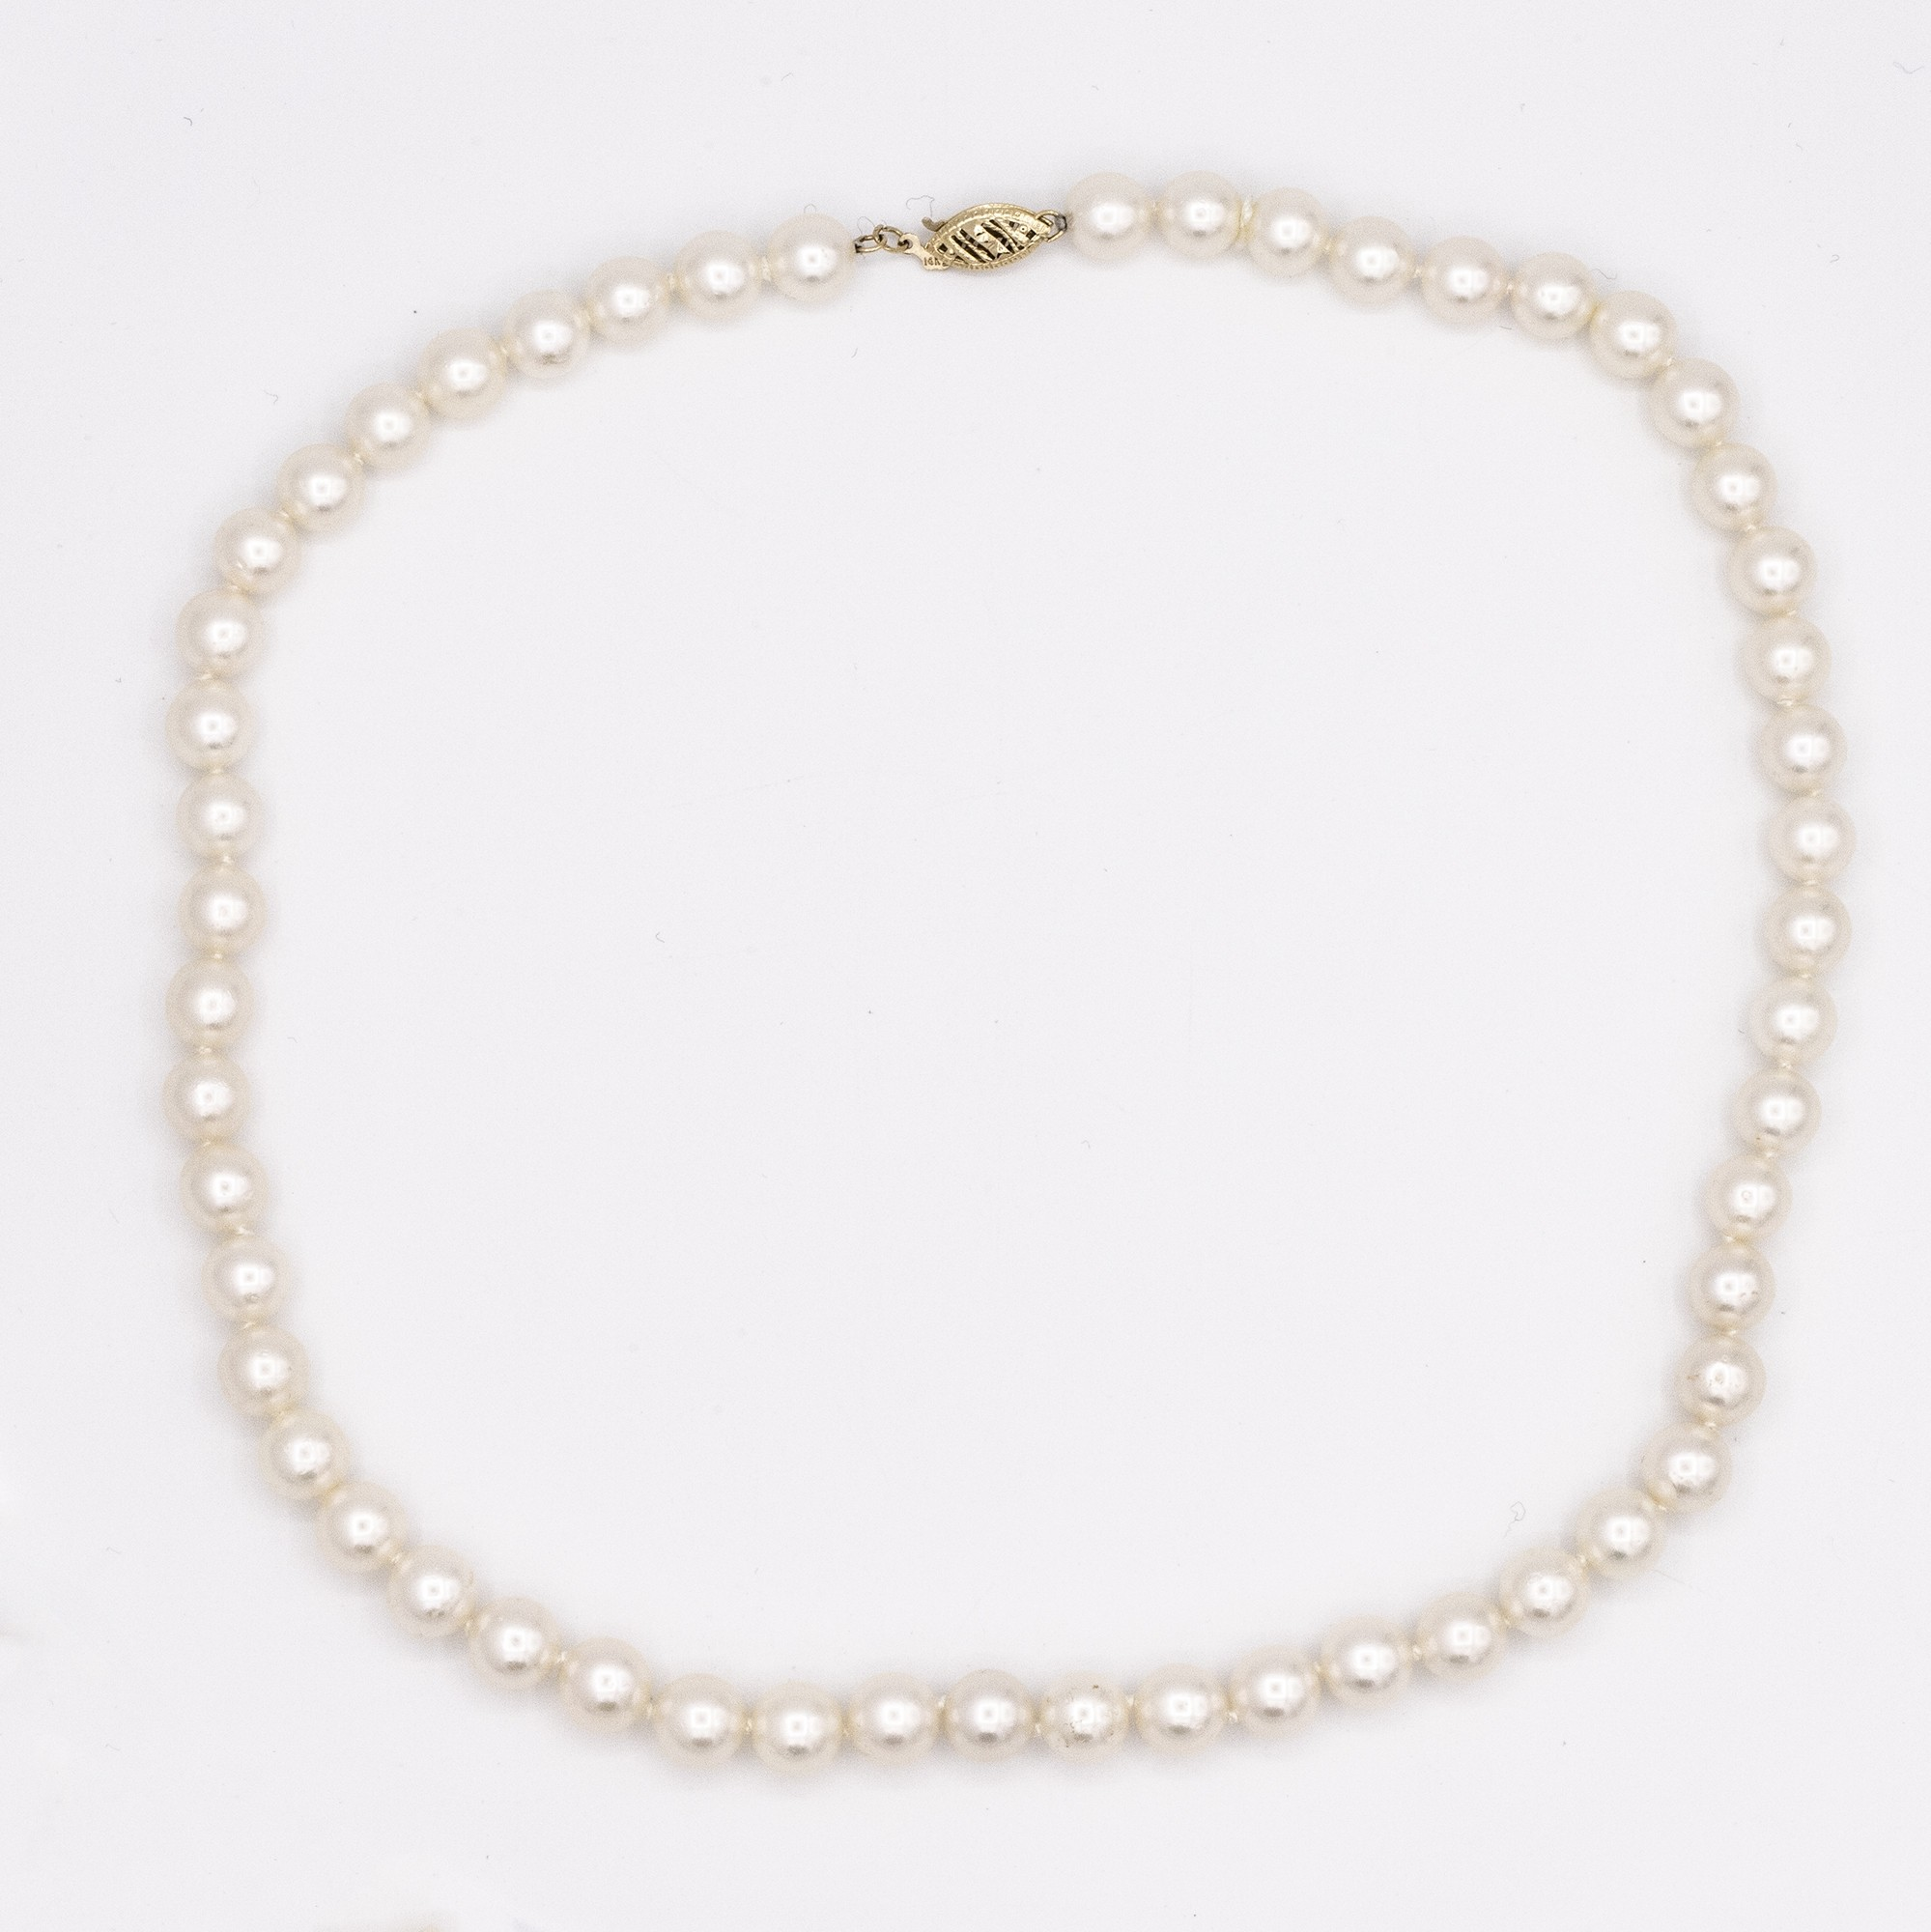 WHITE CULTURED PEARL STRAND NECKLACE